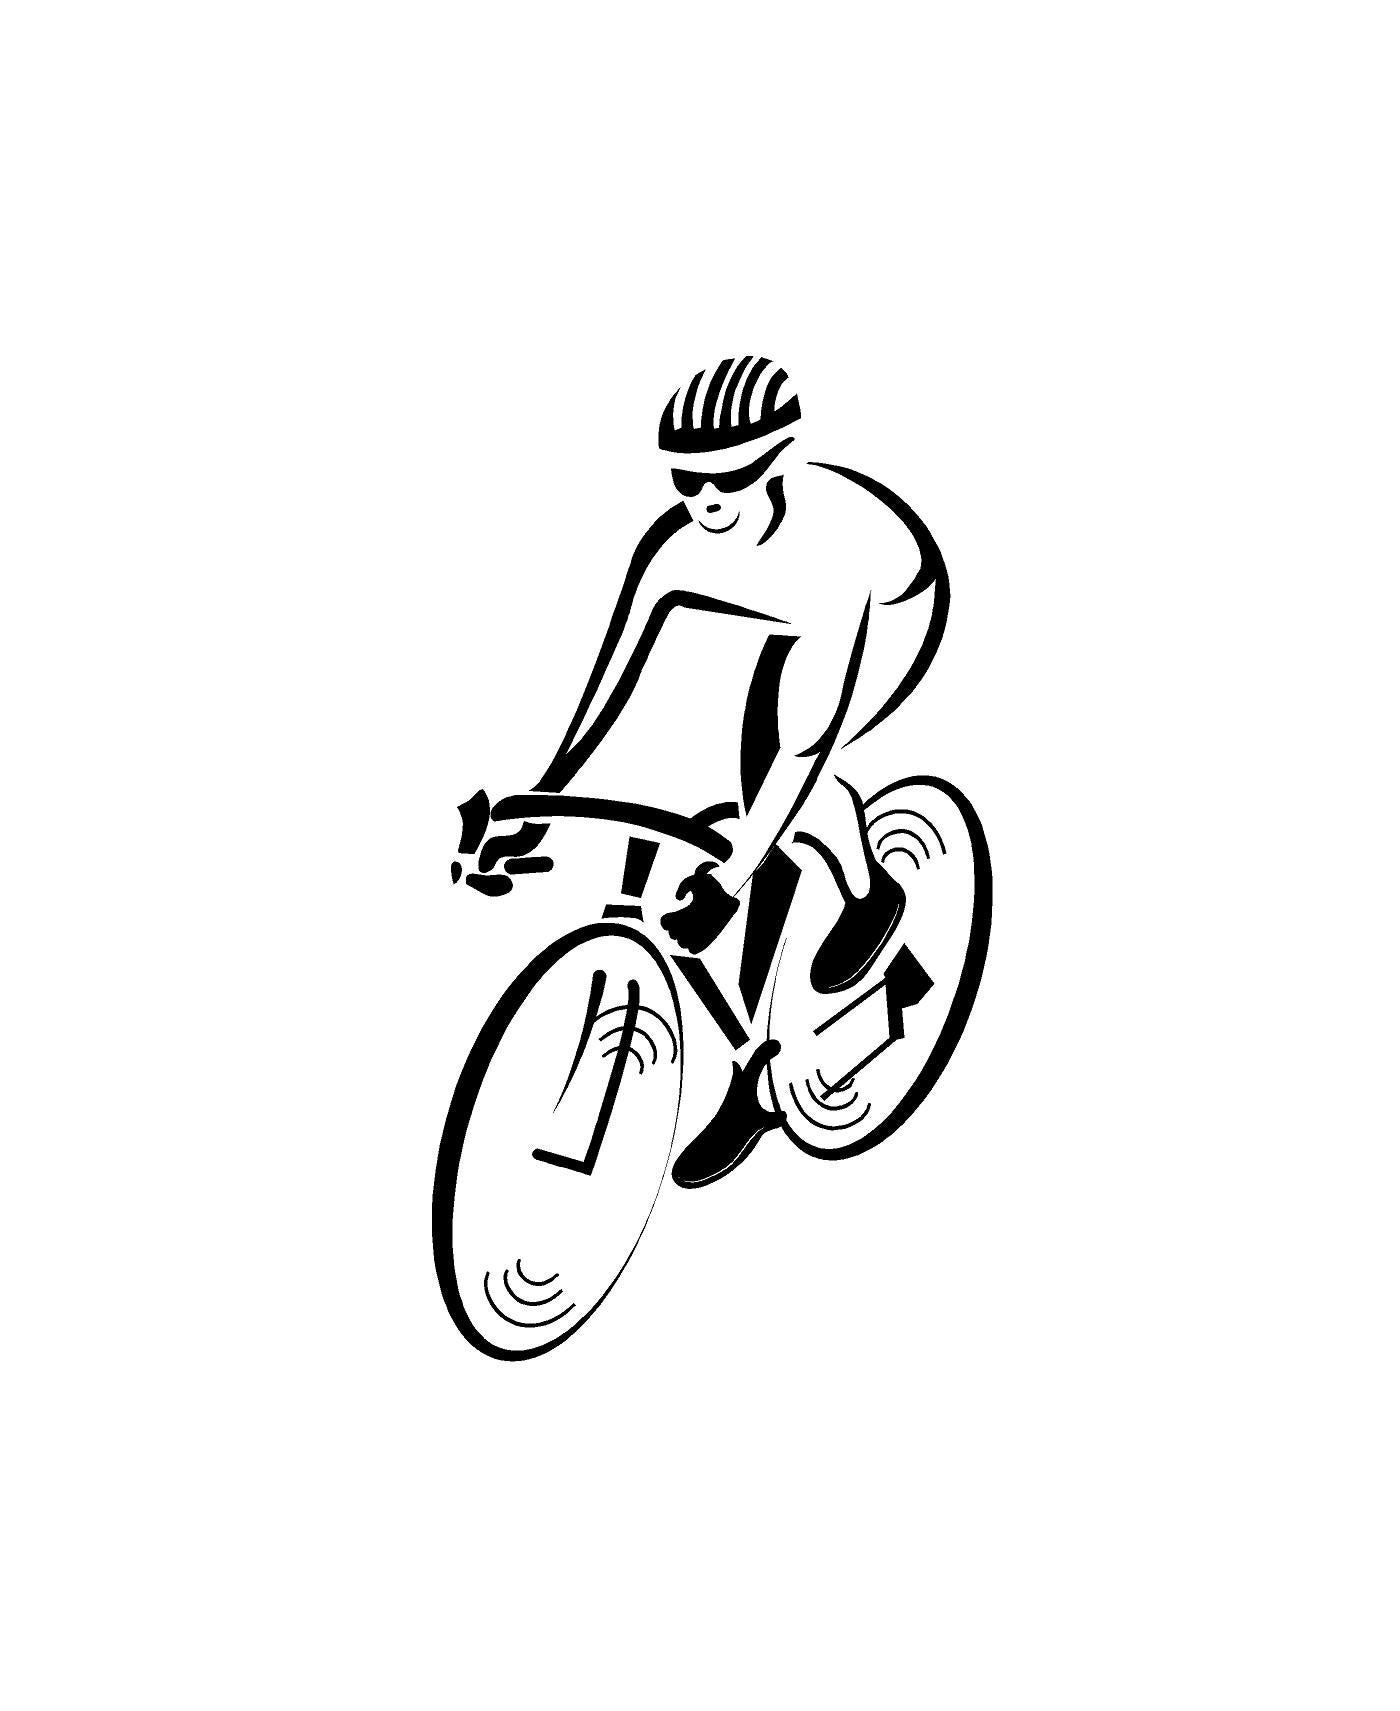 Excited To Share This Item From My Etsy Shop Cyclist Decal Car Decal Auto Vehicle Window Decal Sticker Bicycle Dec Custom Vinyl Decal Bike Rider Custom Vinyl [ 1711 x 1400 Pixel ]